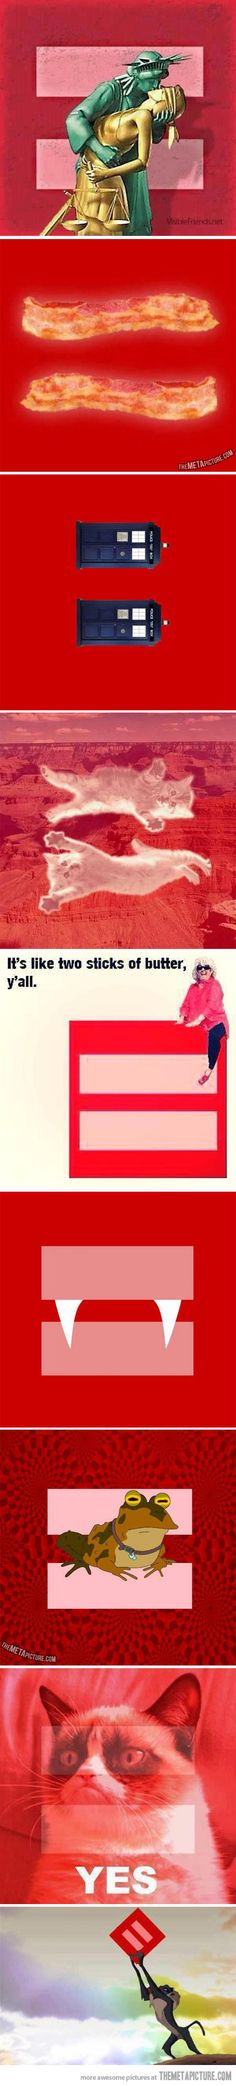 Different versions of the marriage equality symbol. Paula Deen is my favorite.